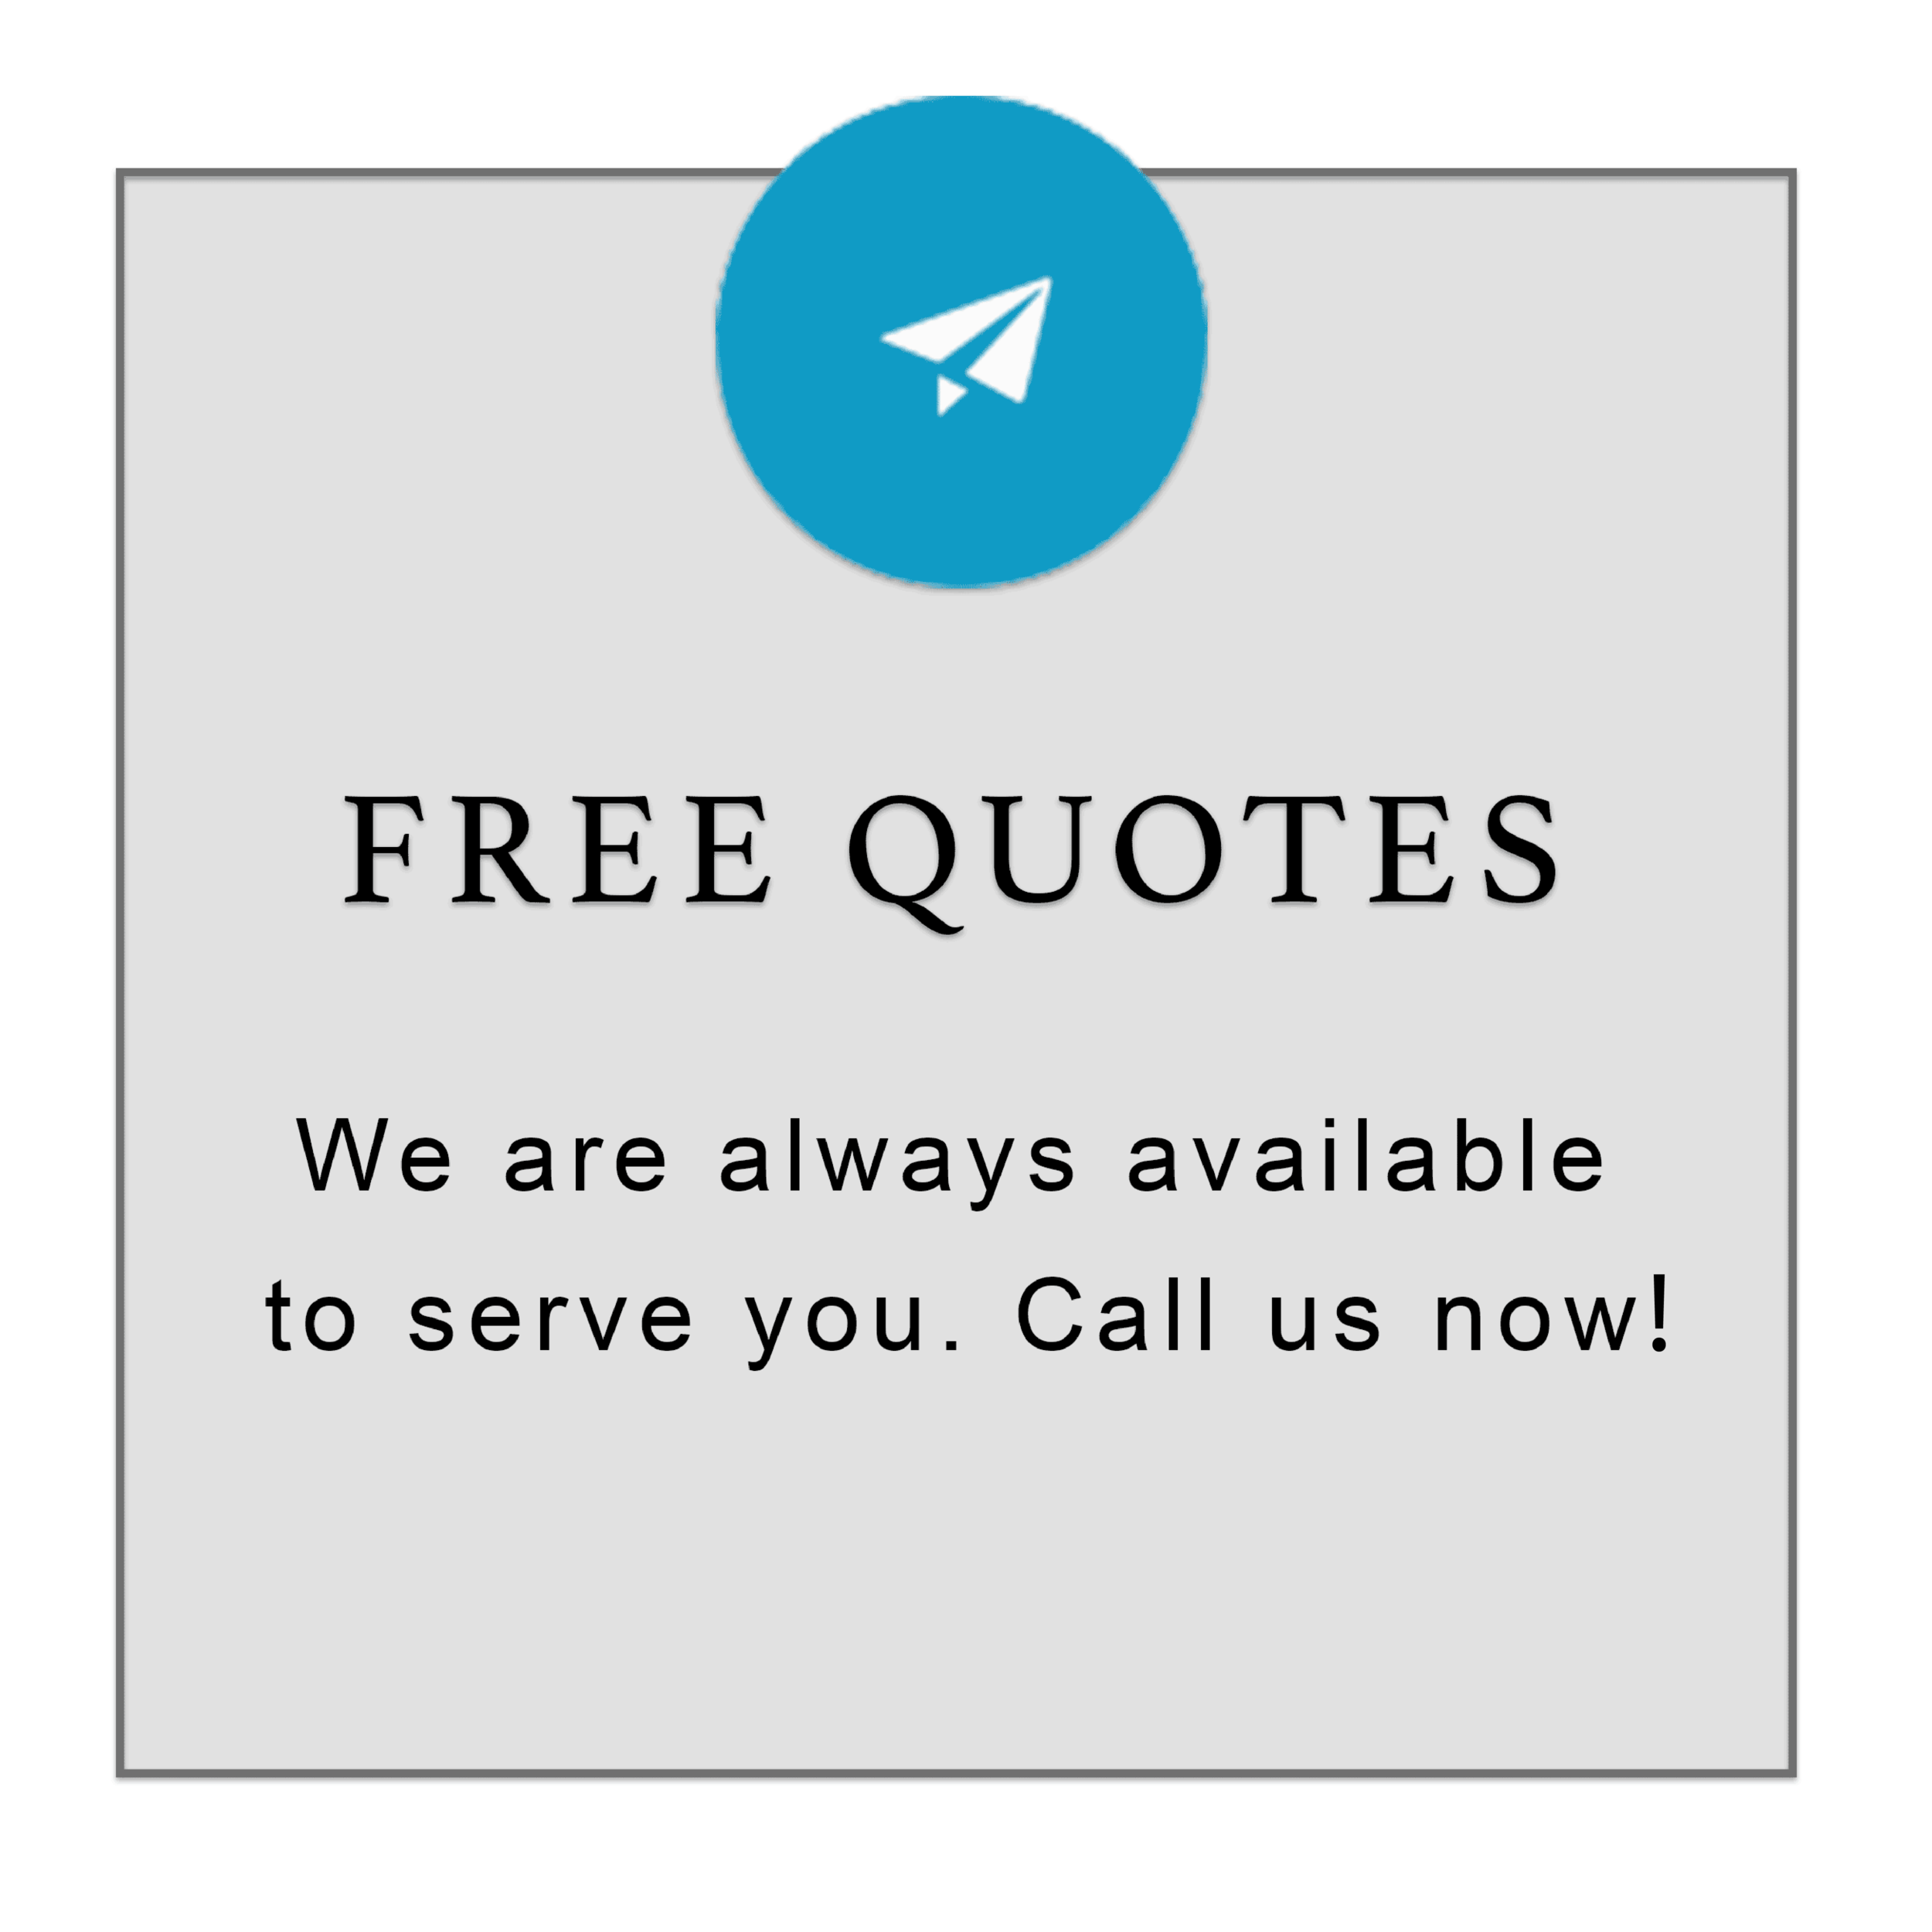 freequotes-01.png